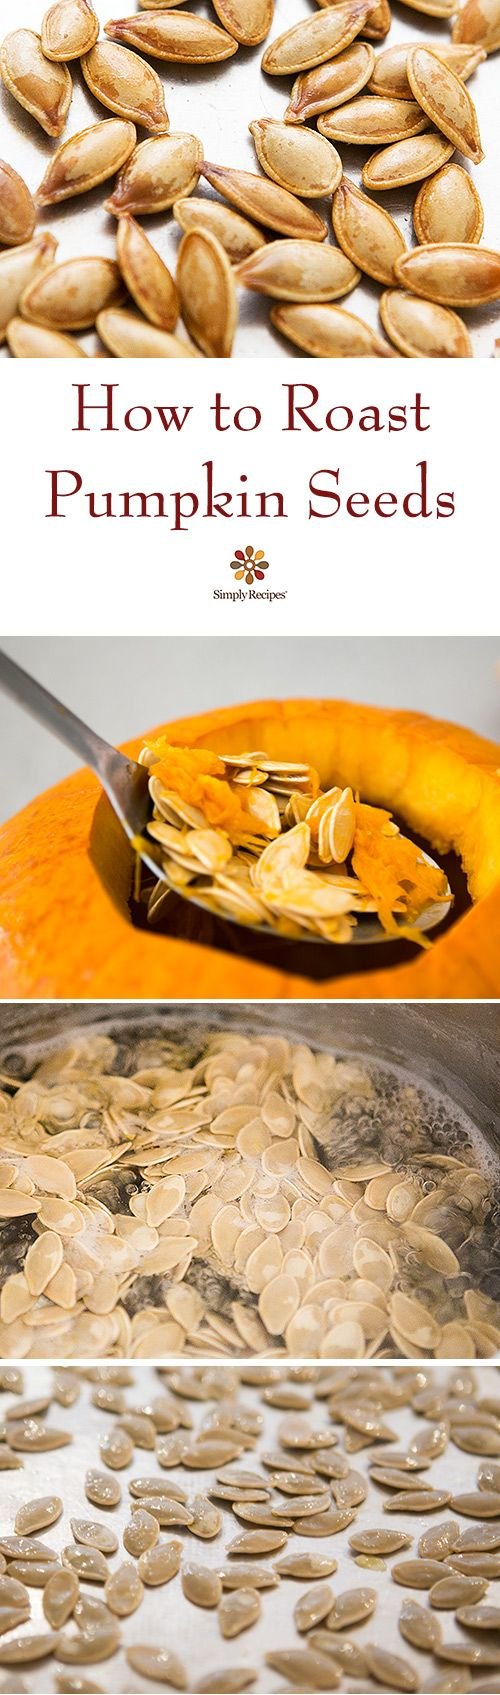 Roasted Pumpkin Seeds {Super Easy} | SimplyRecipes.com